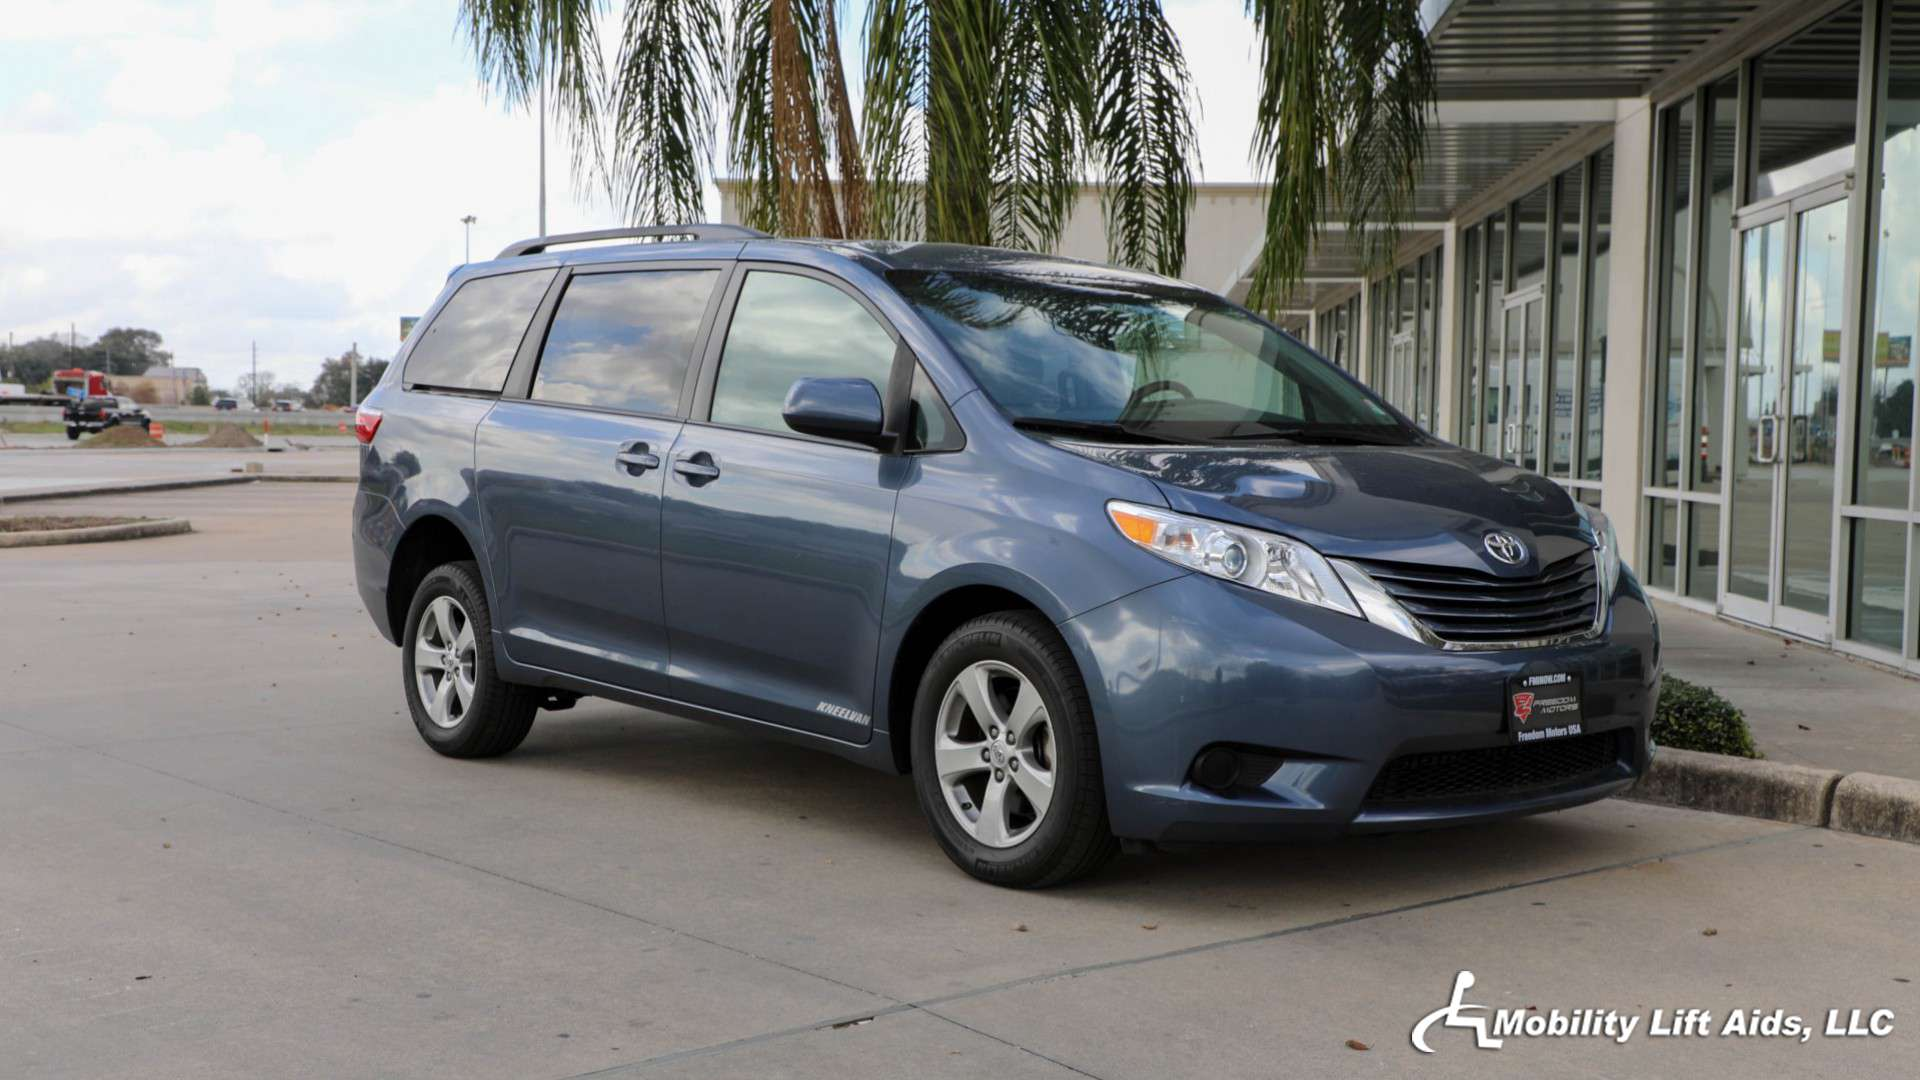 Wheelchair van for sale 2015 toyota sienna stock 1024 mobility lift aids llc